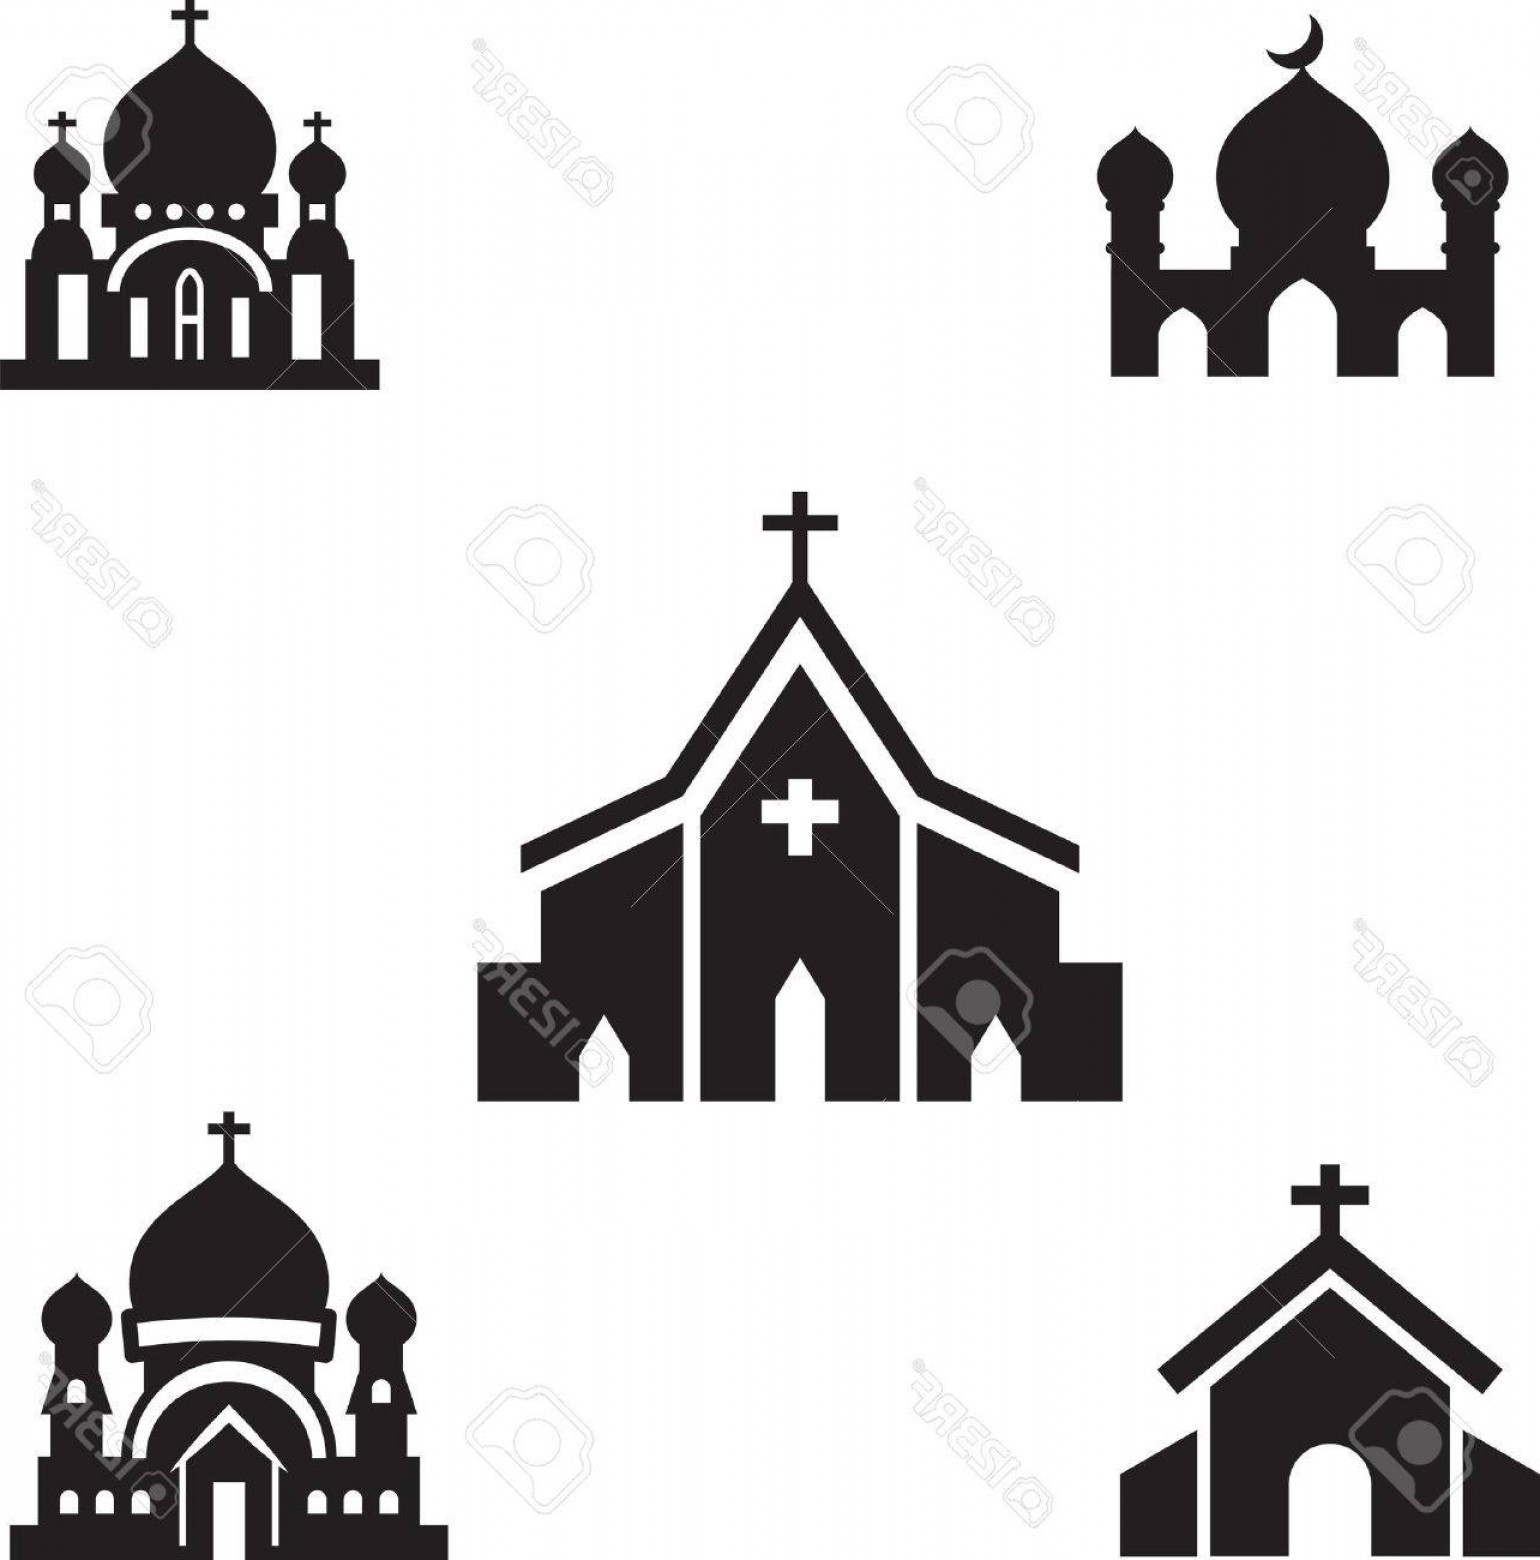 Church Silhouette Vector: Photostock Vector Church Silhouette Isolated Vector